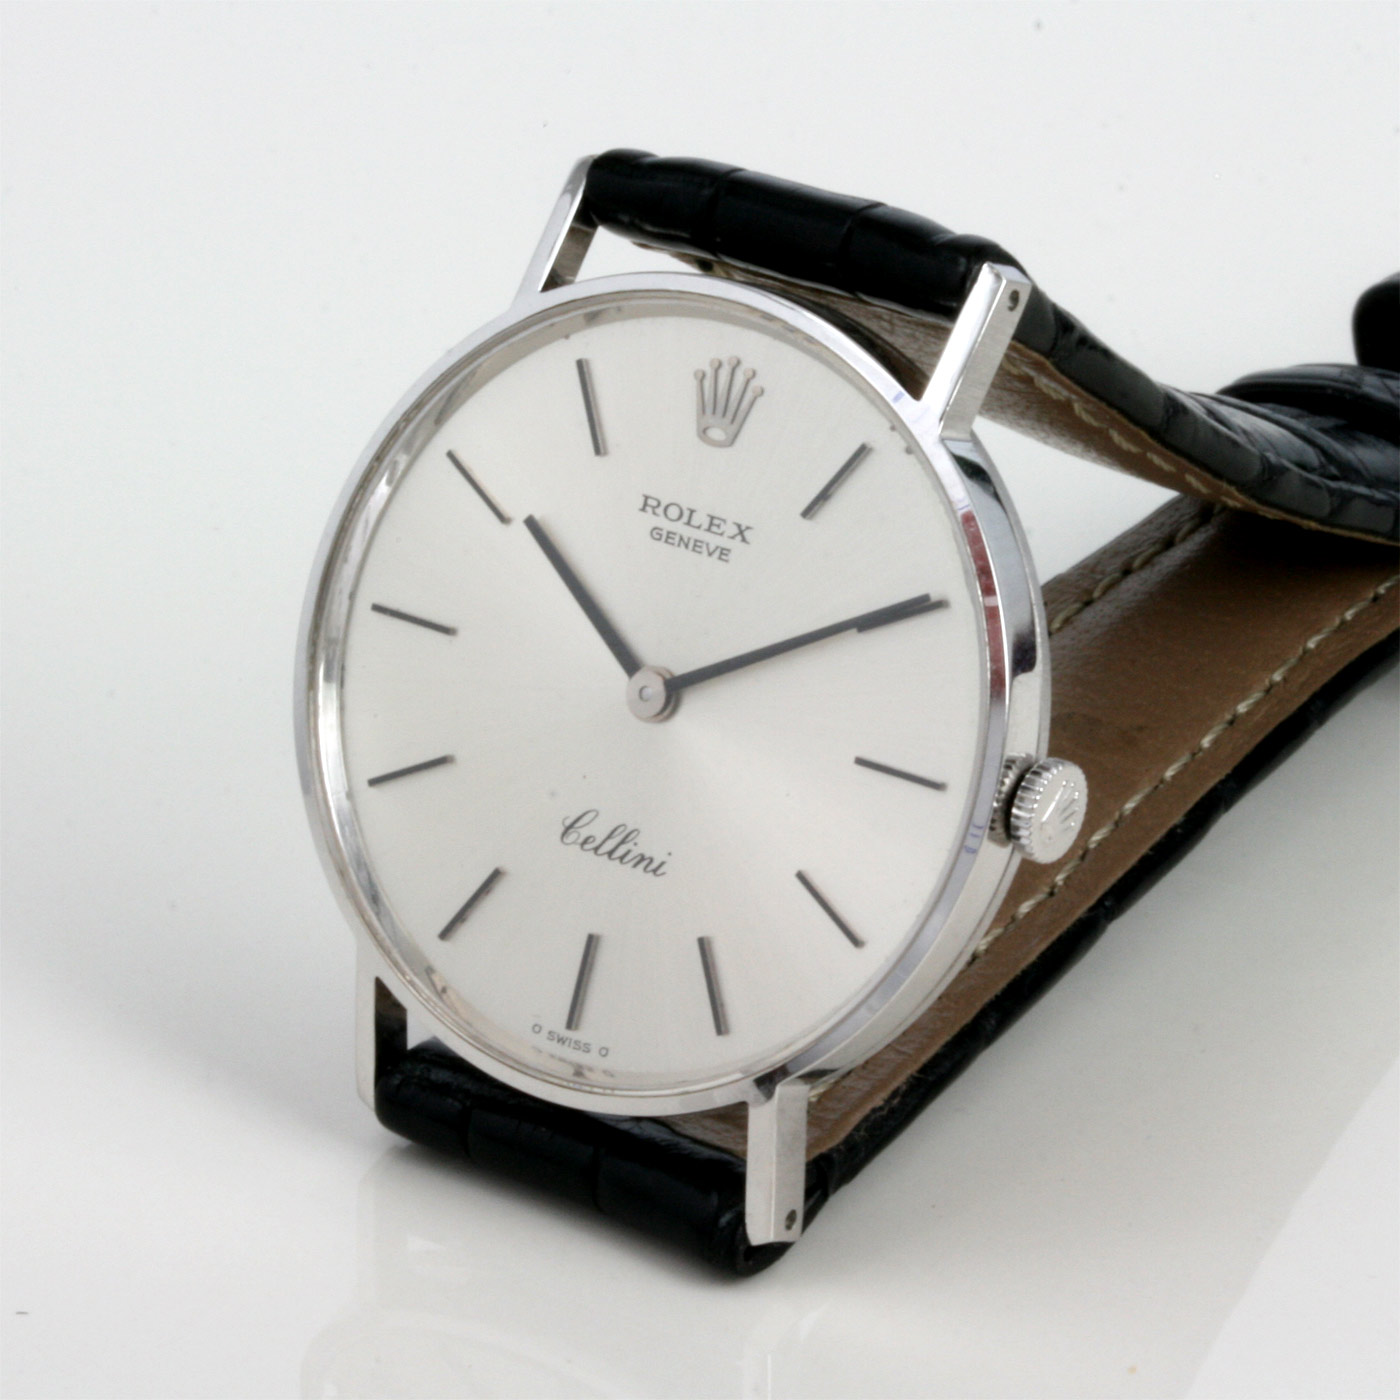 Buy White gold Rolex Cellini watch Sold Items Sold Rolex